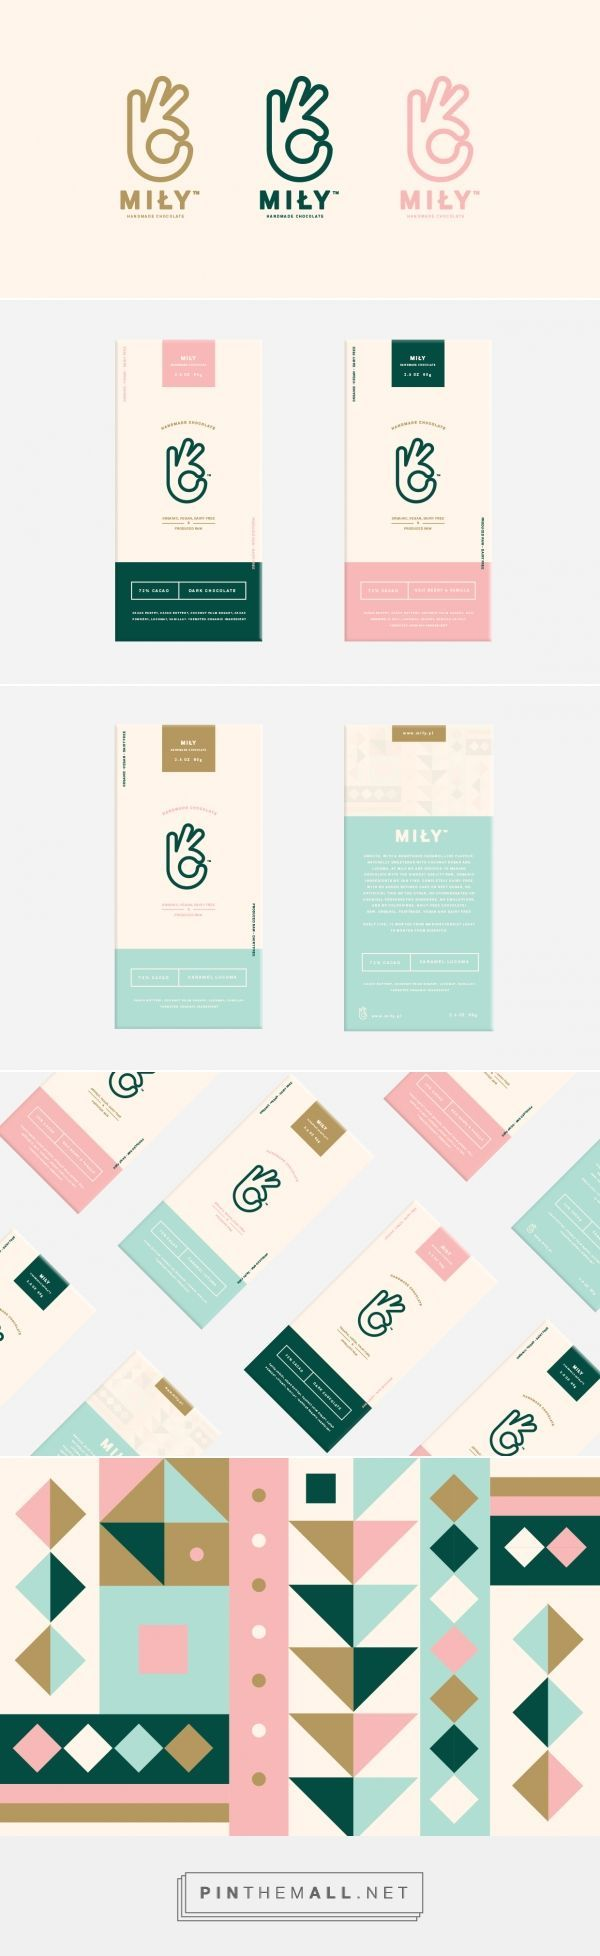 Miły – Chocolate by Lucas Jubb. If you like UX, design, or design thinking…